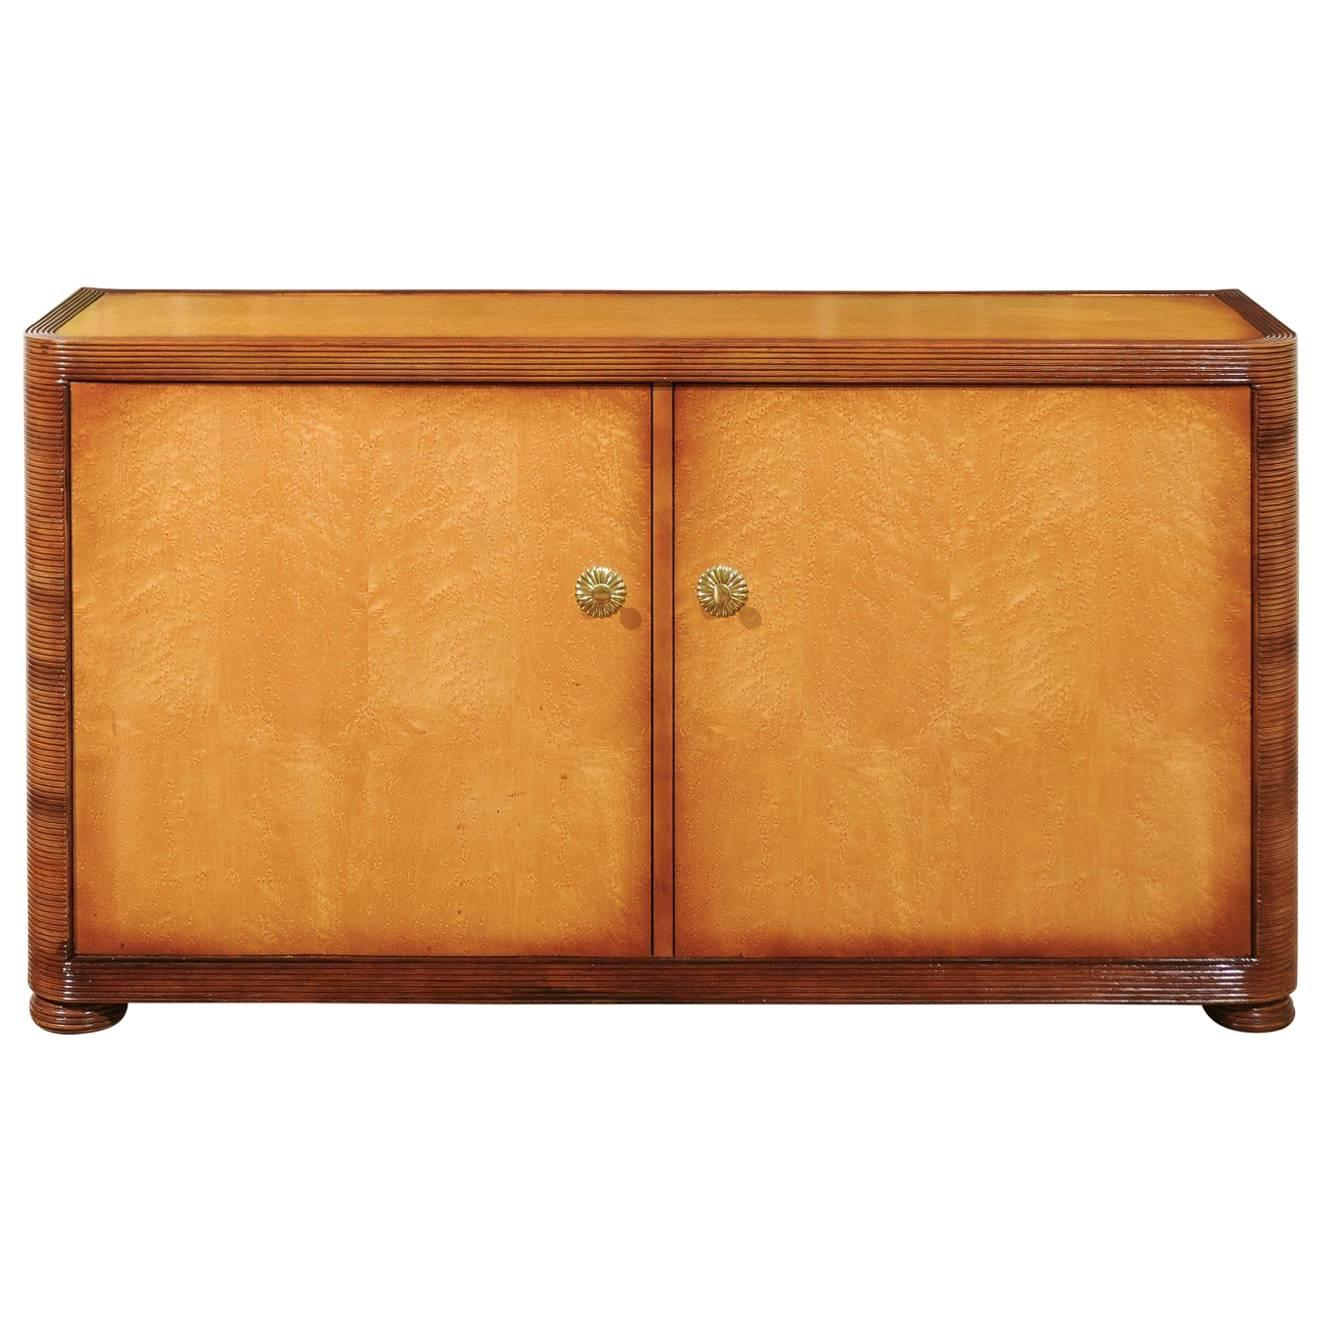 Unbelievable Restored Bamboo and Birdseye Maple Cabinet by Baker, circa 1980